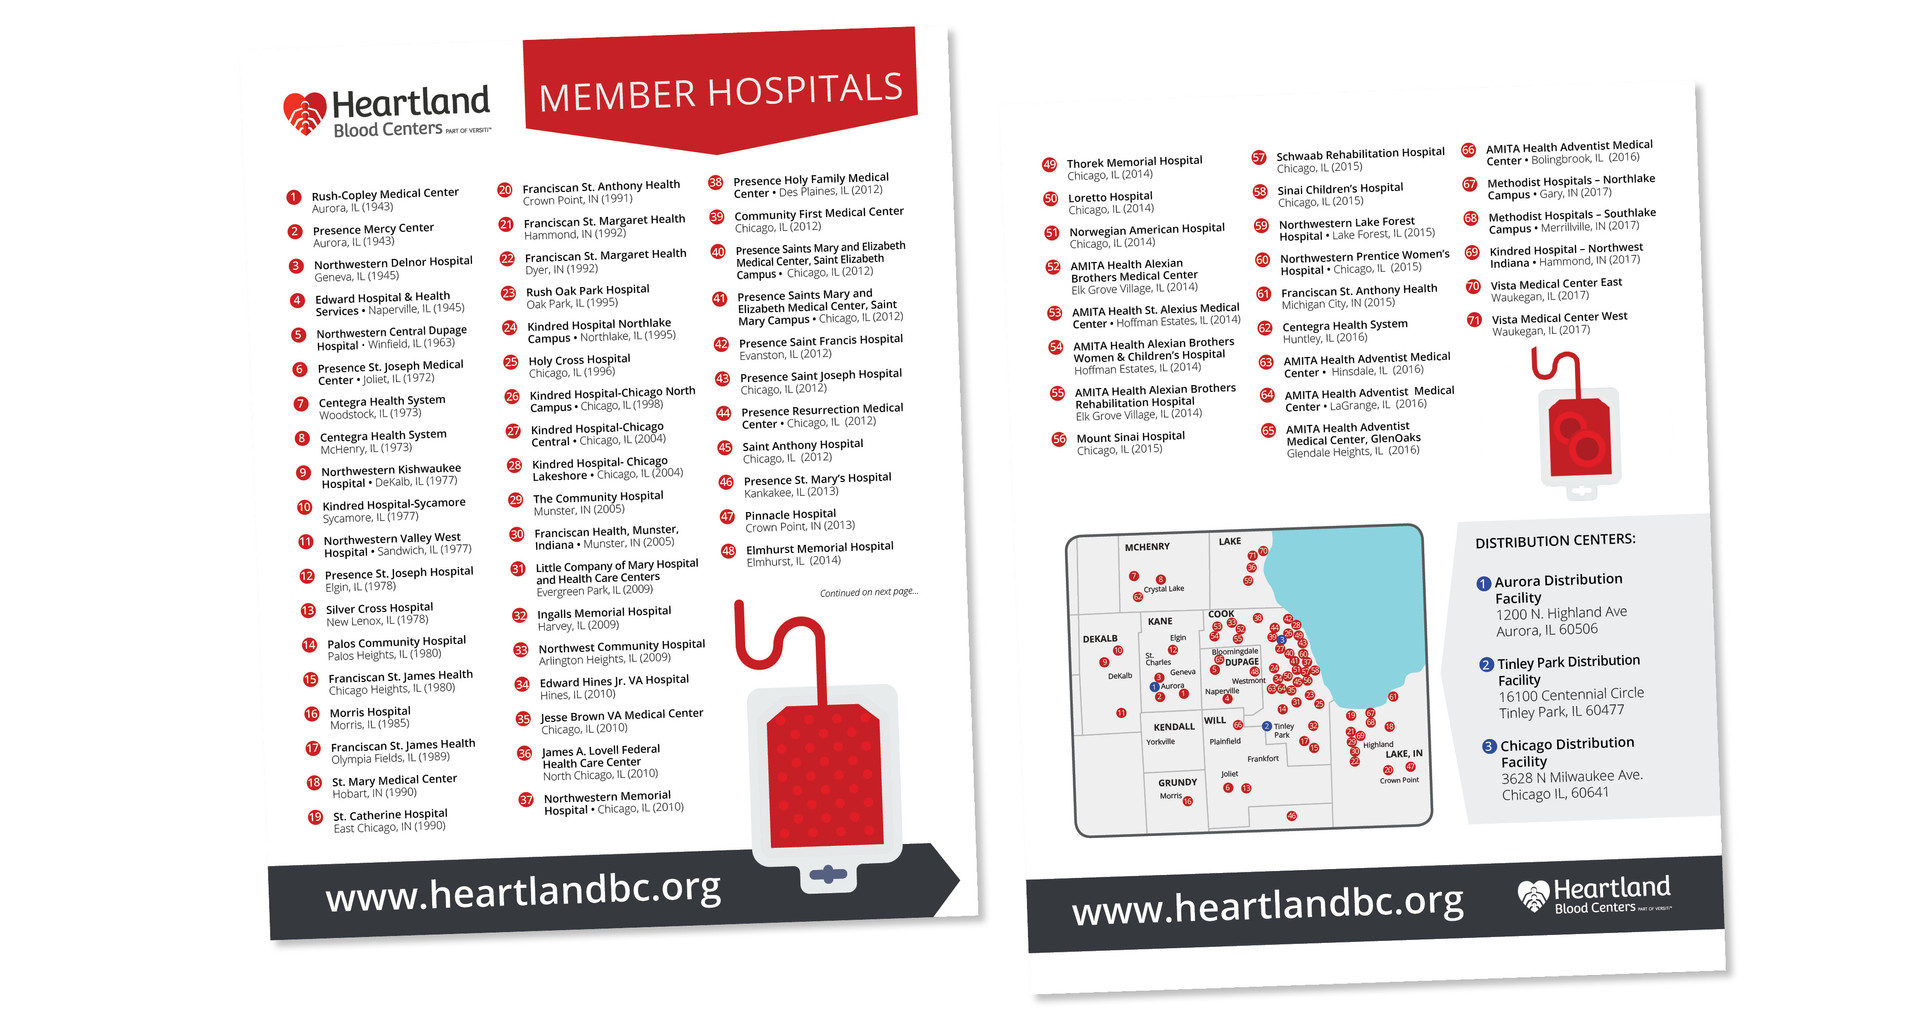 Heartland Blood Centers Member Guide